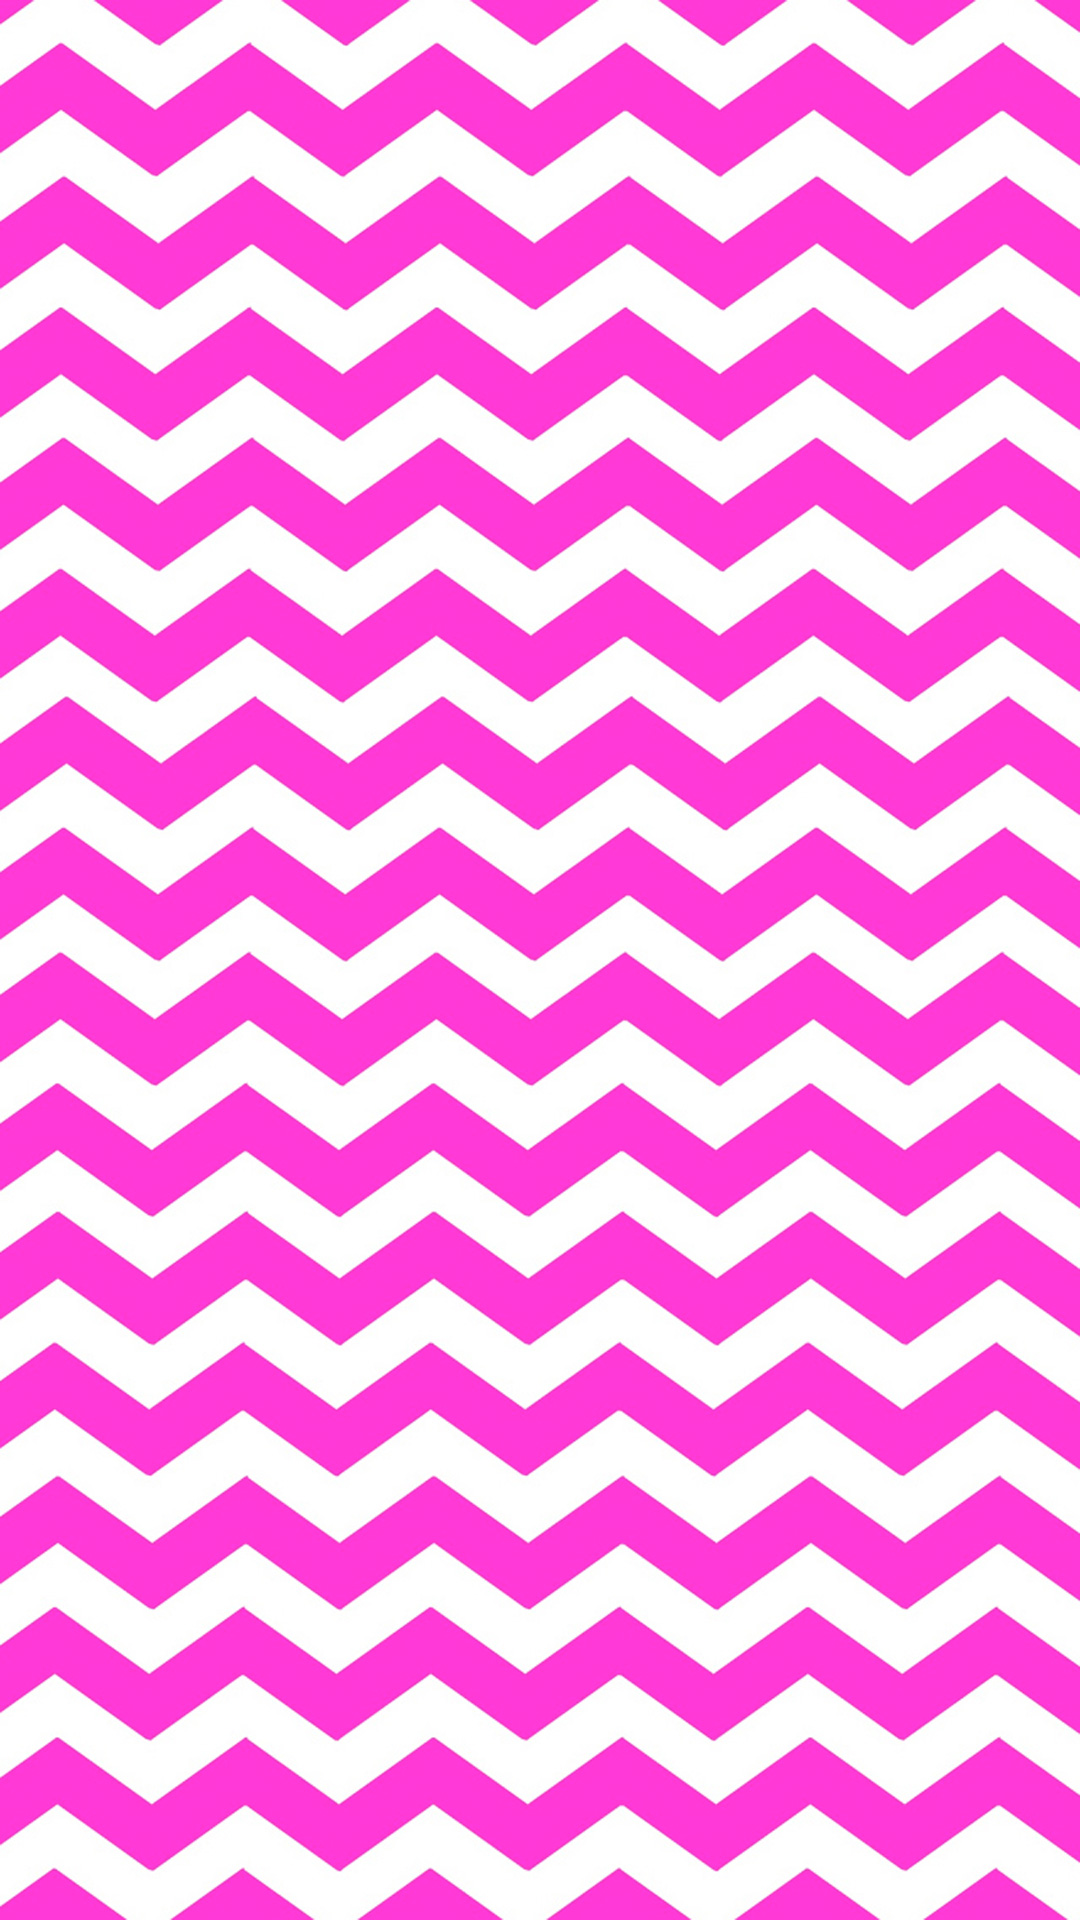 Iphone 4s Girly Wallpapers Chevron Pattern Iphone Wallpaper Hd